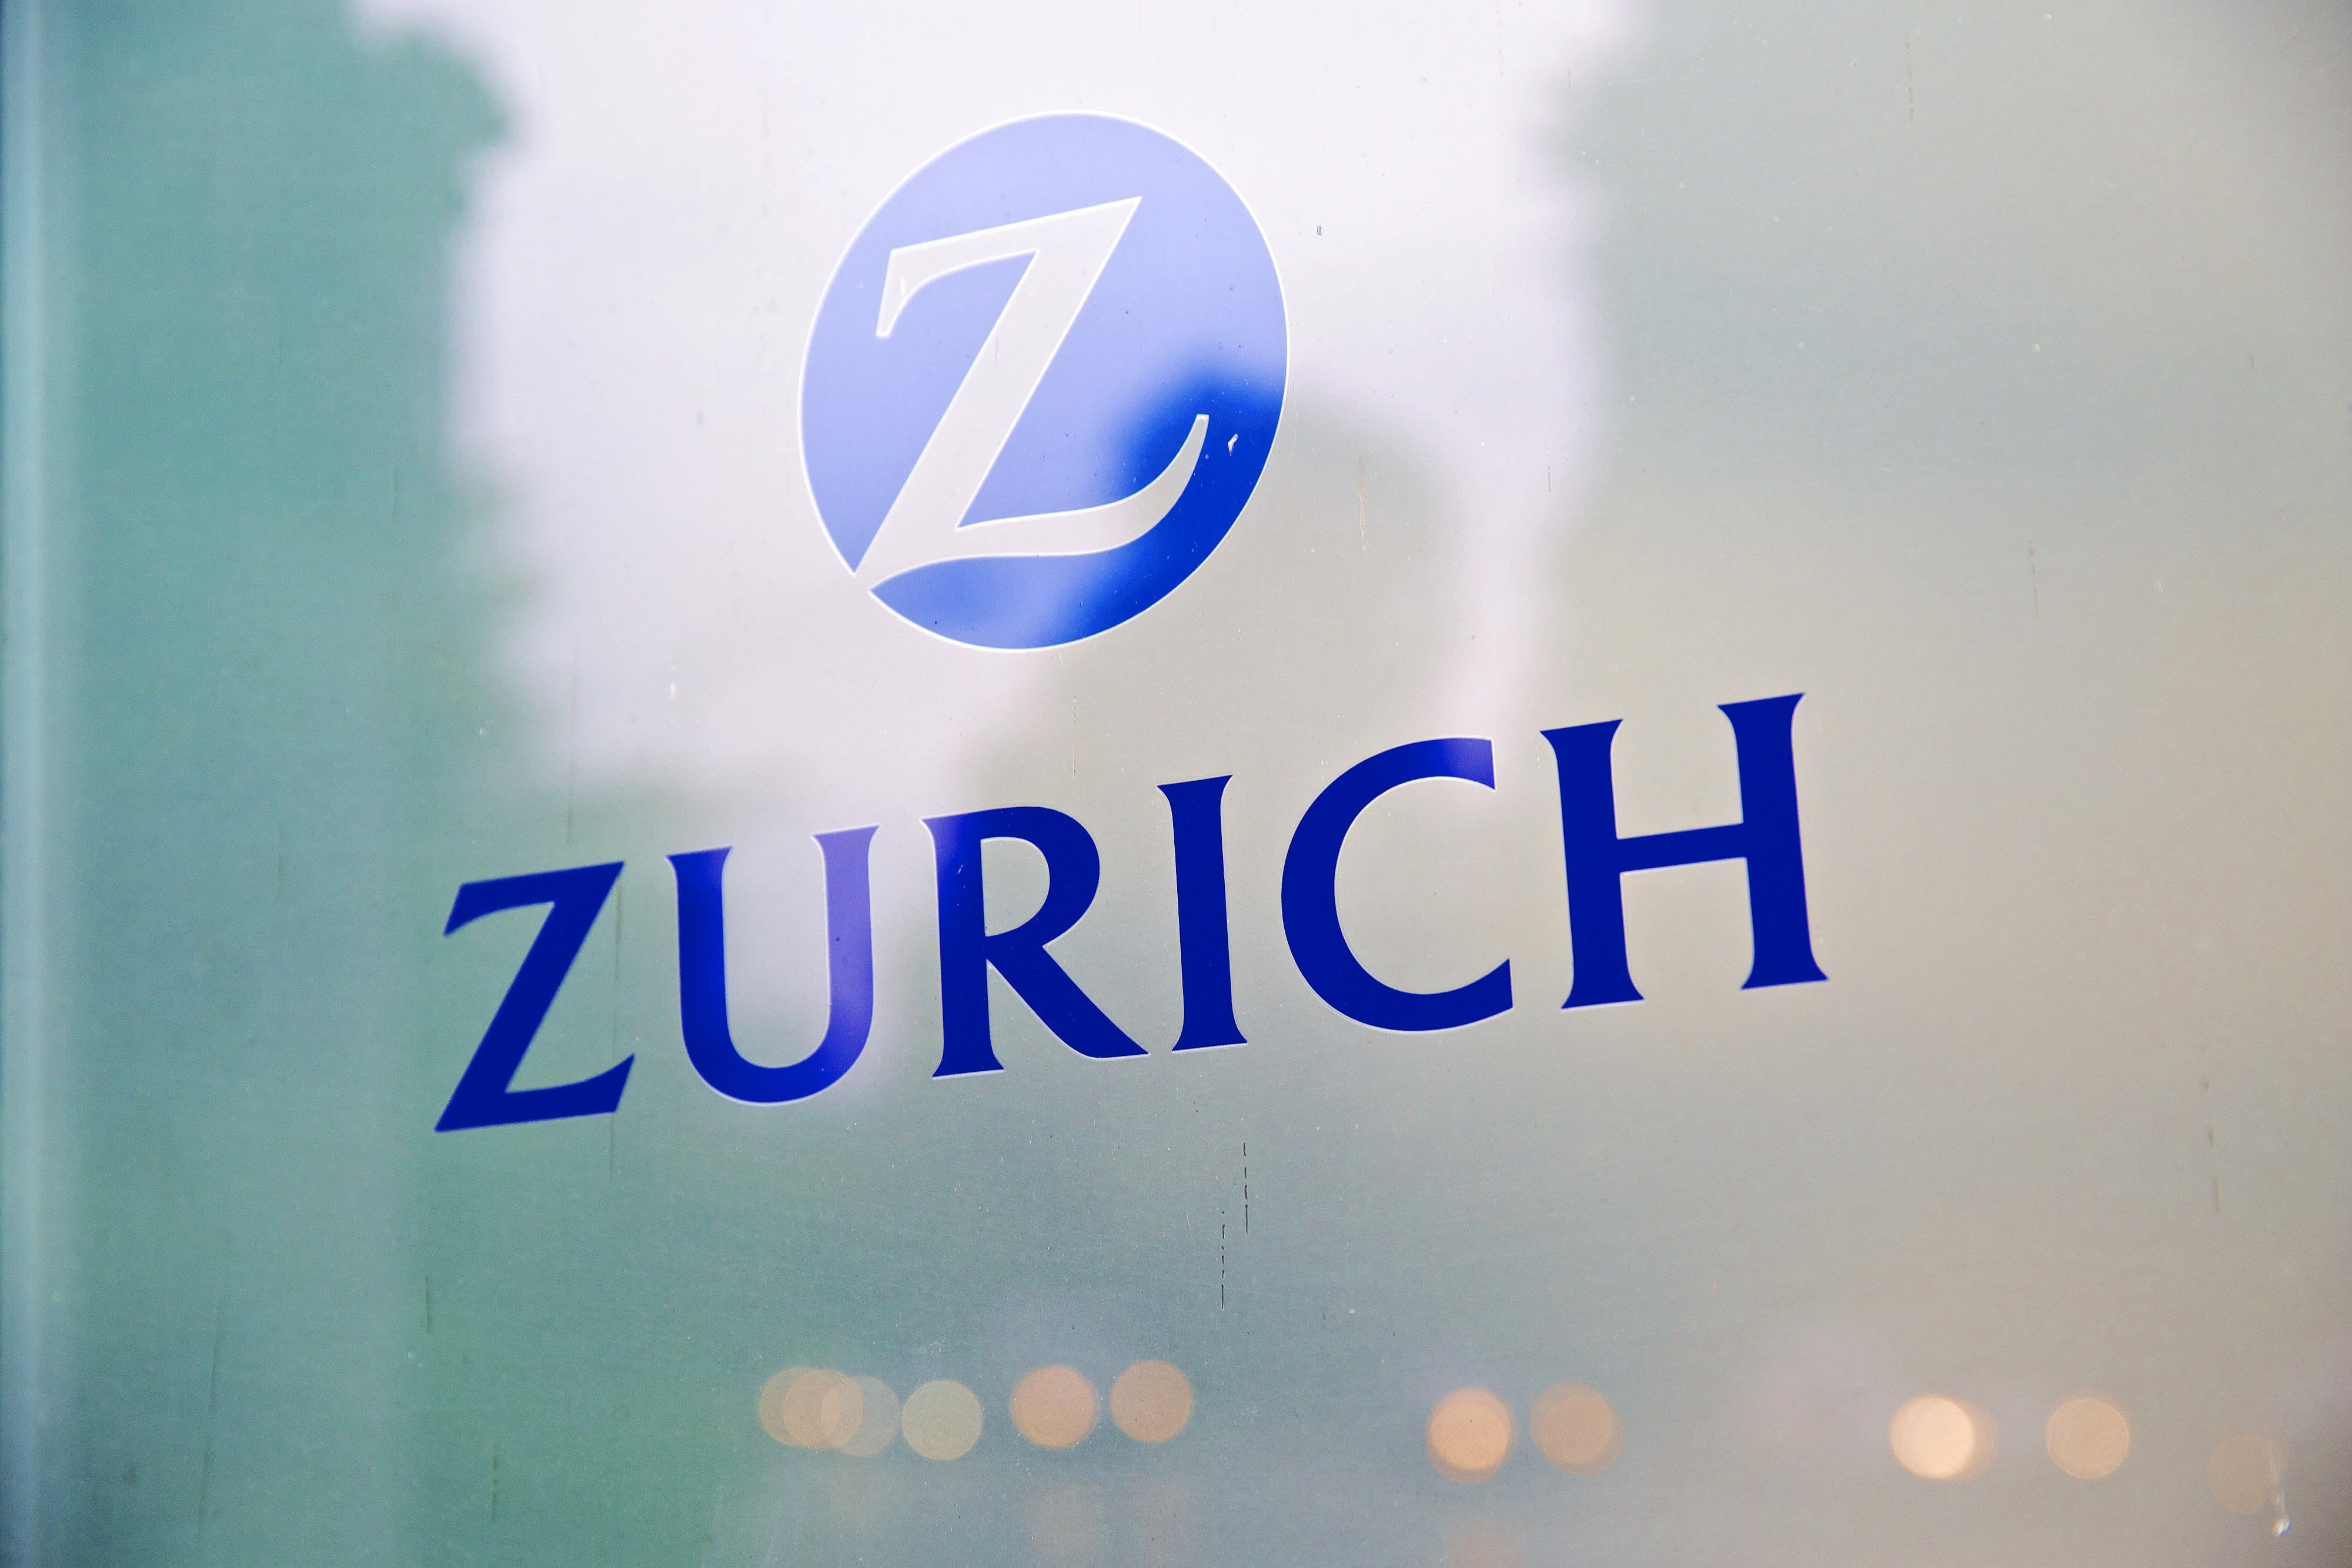 Zurich UK sees earnings rise after workplace sale